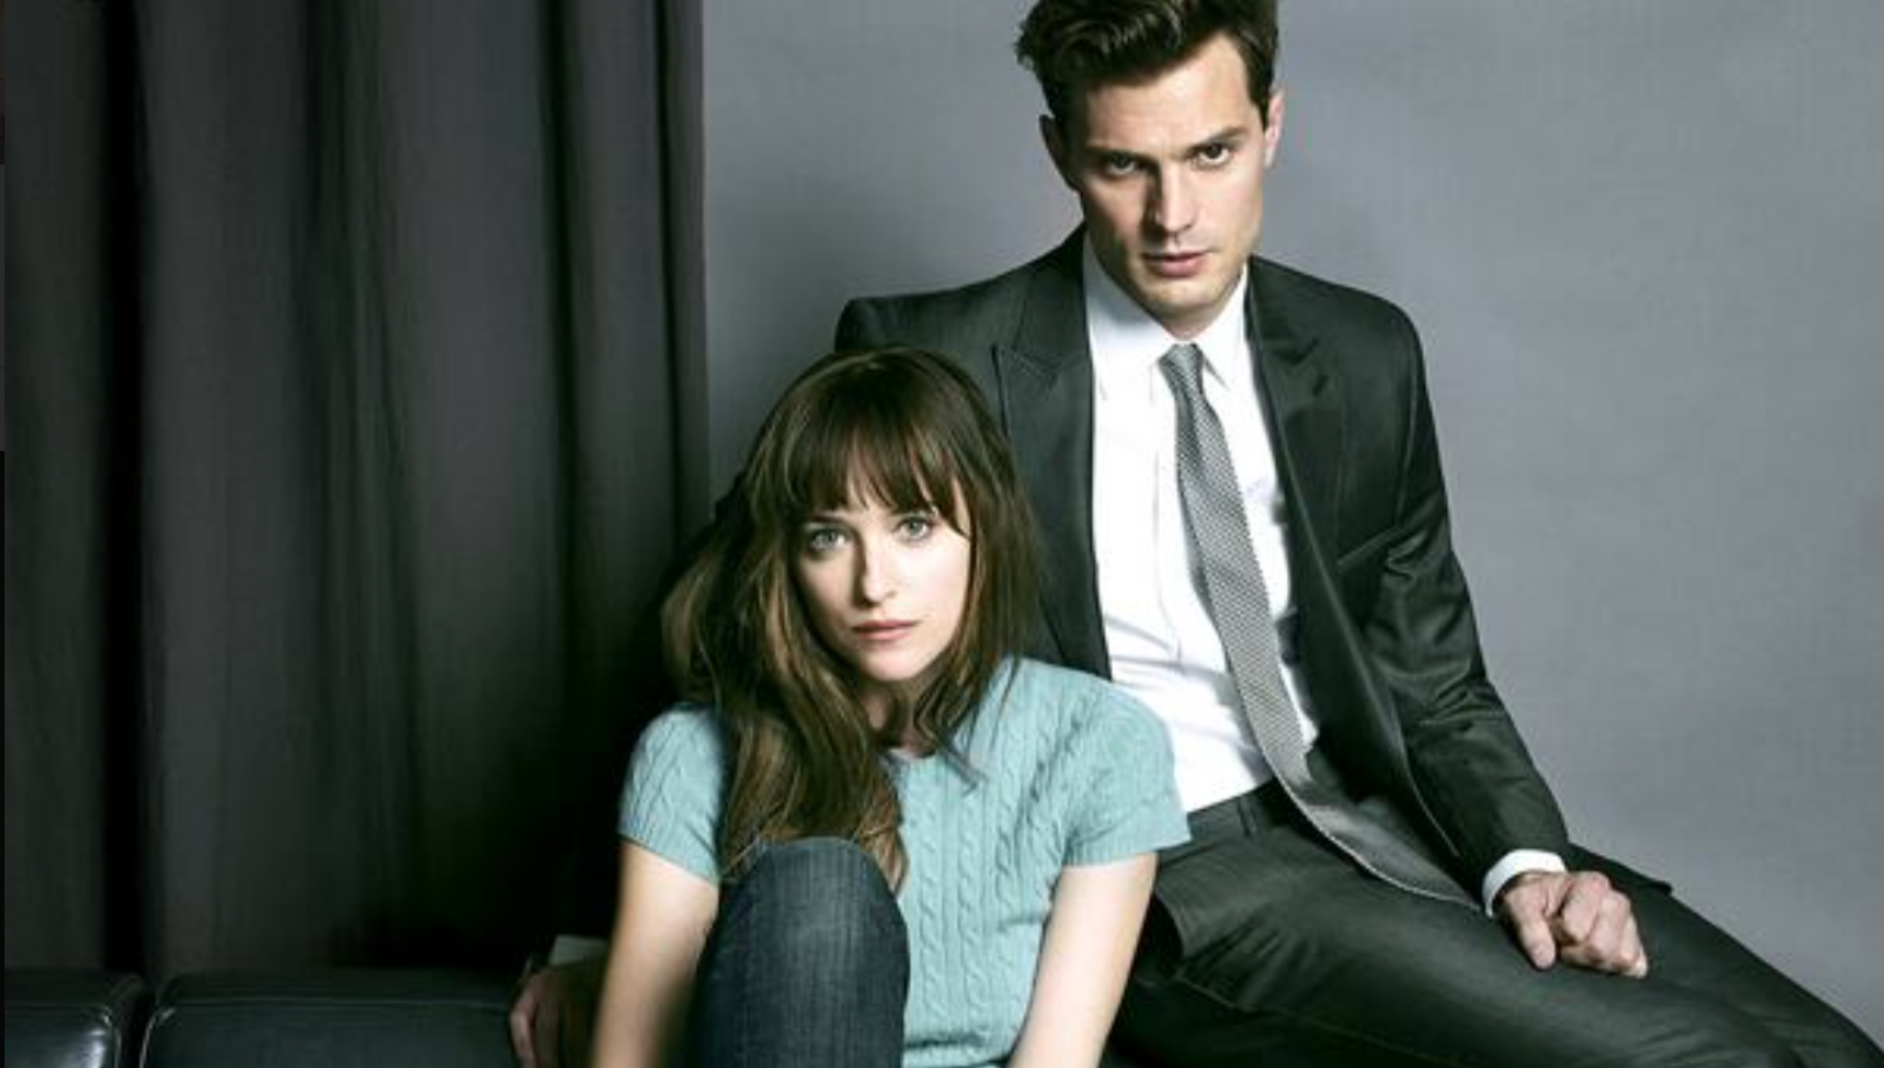 fifty shades of grey movie hd wallpapers. Black Bedroom Furniture Sets. Home Design Ideas